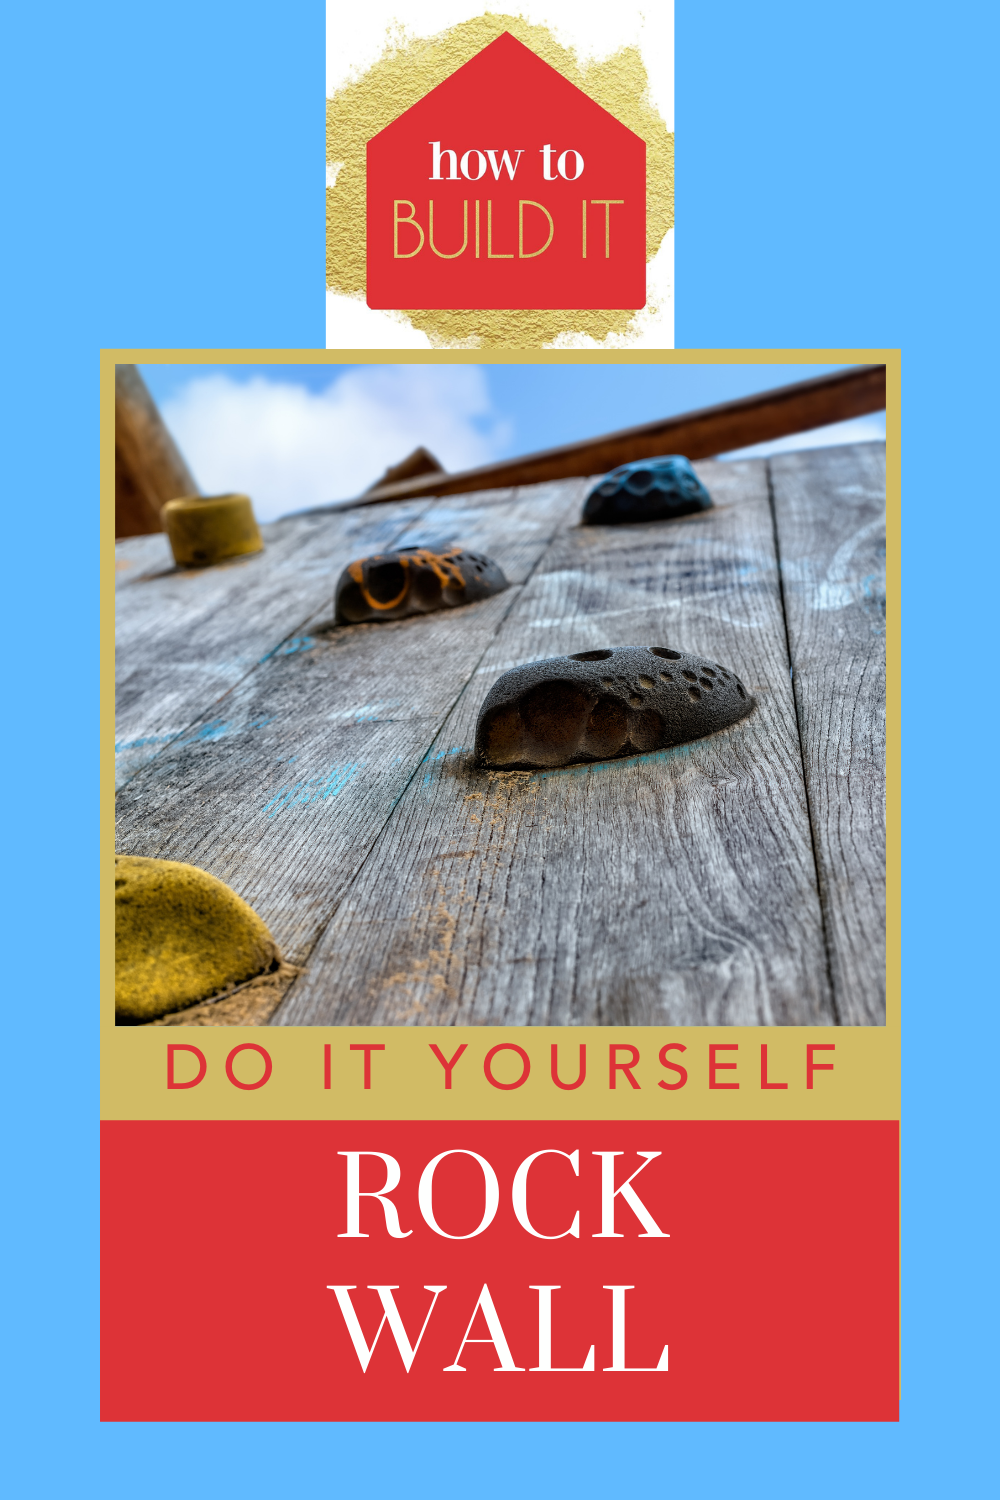 Howtobuildit.org has all of the best in home improvement and maintenance. Make play time more fun and active! Try out one of these DIY kids' rock walls!